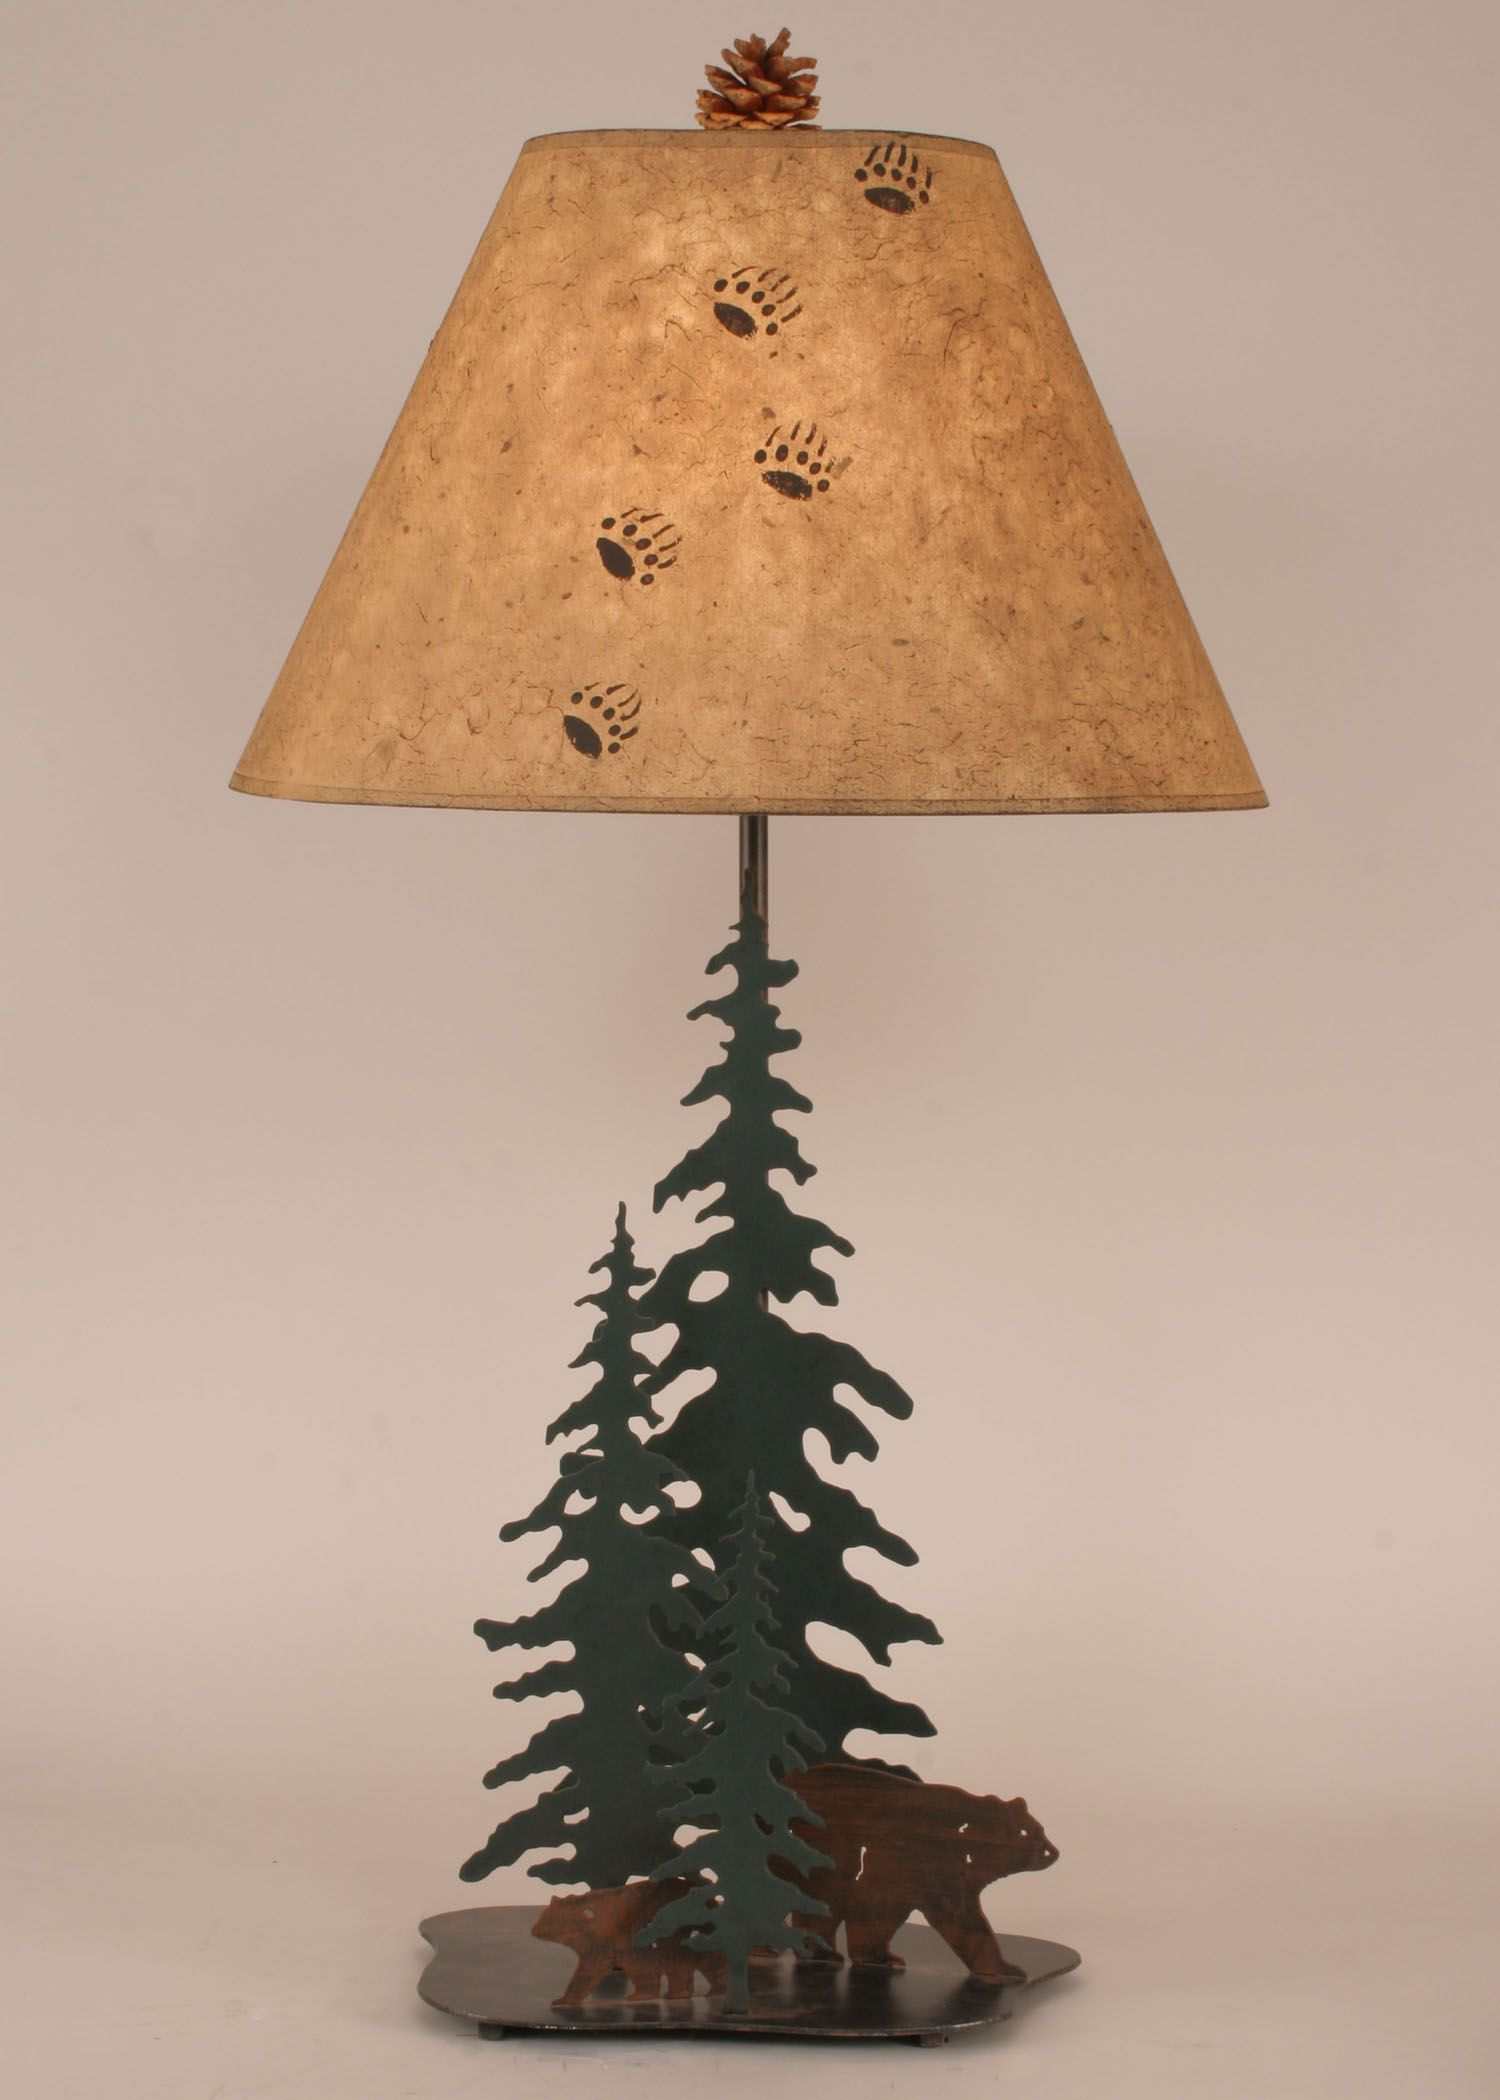 Rustic iron pine tree table lamp with bear family outland finish rustic iron pine tree table lamp with bear family outland finish height 33in geotapseo Choice Image